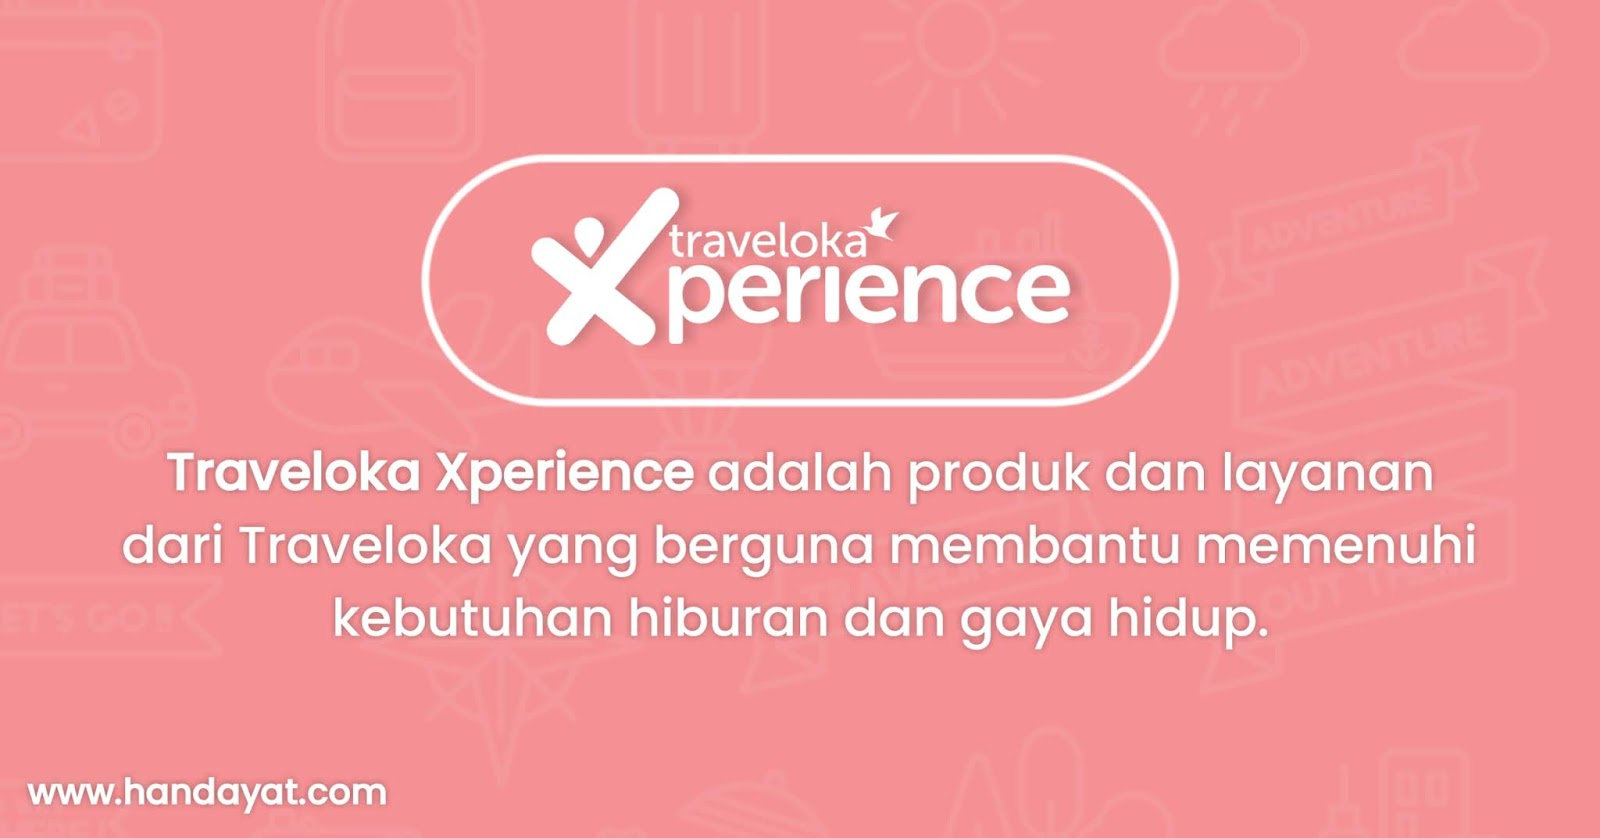 Pengertian Traveloka Xperience